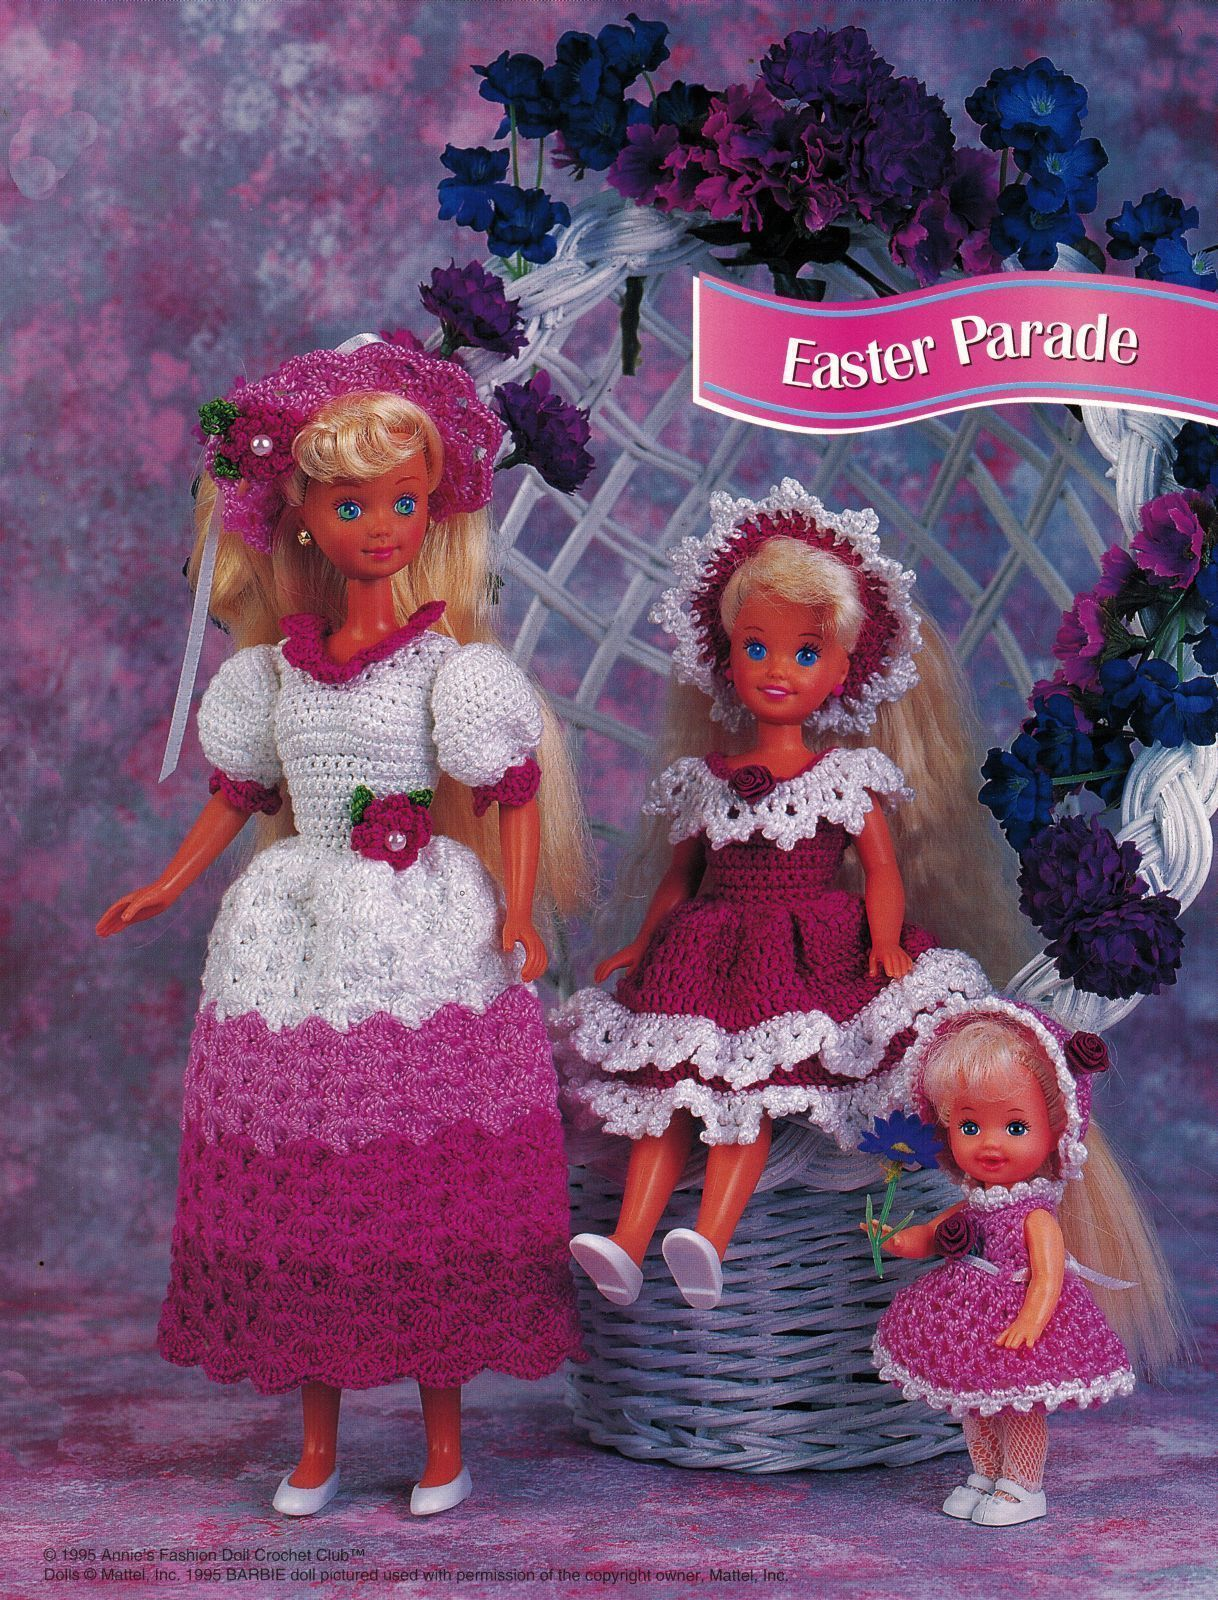 Easter Bunny Costume Dress Hat Suit 3 Sizes Barbie Doll Crochet Patterns image 2